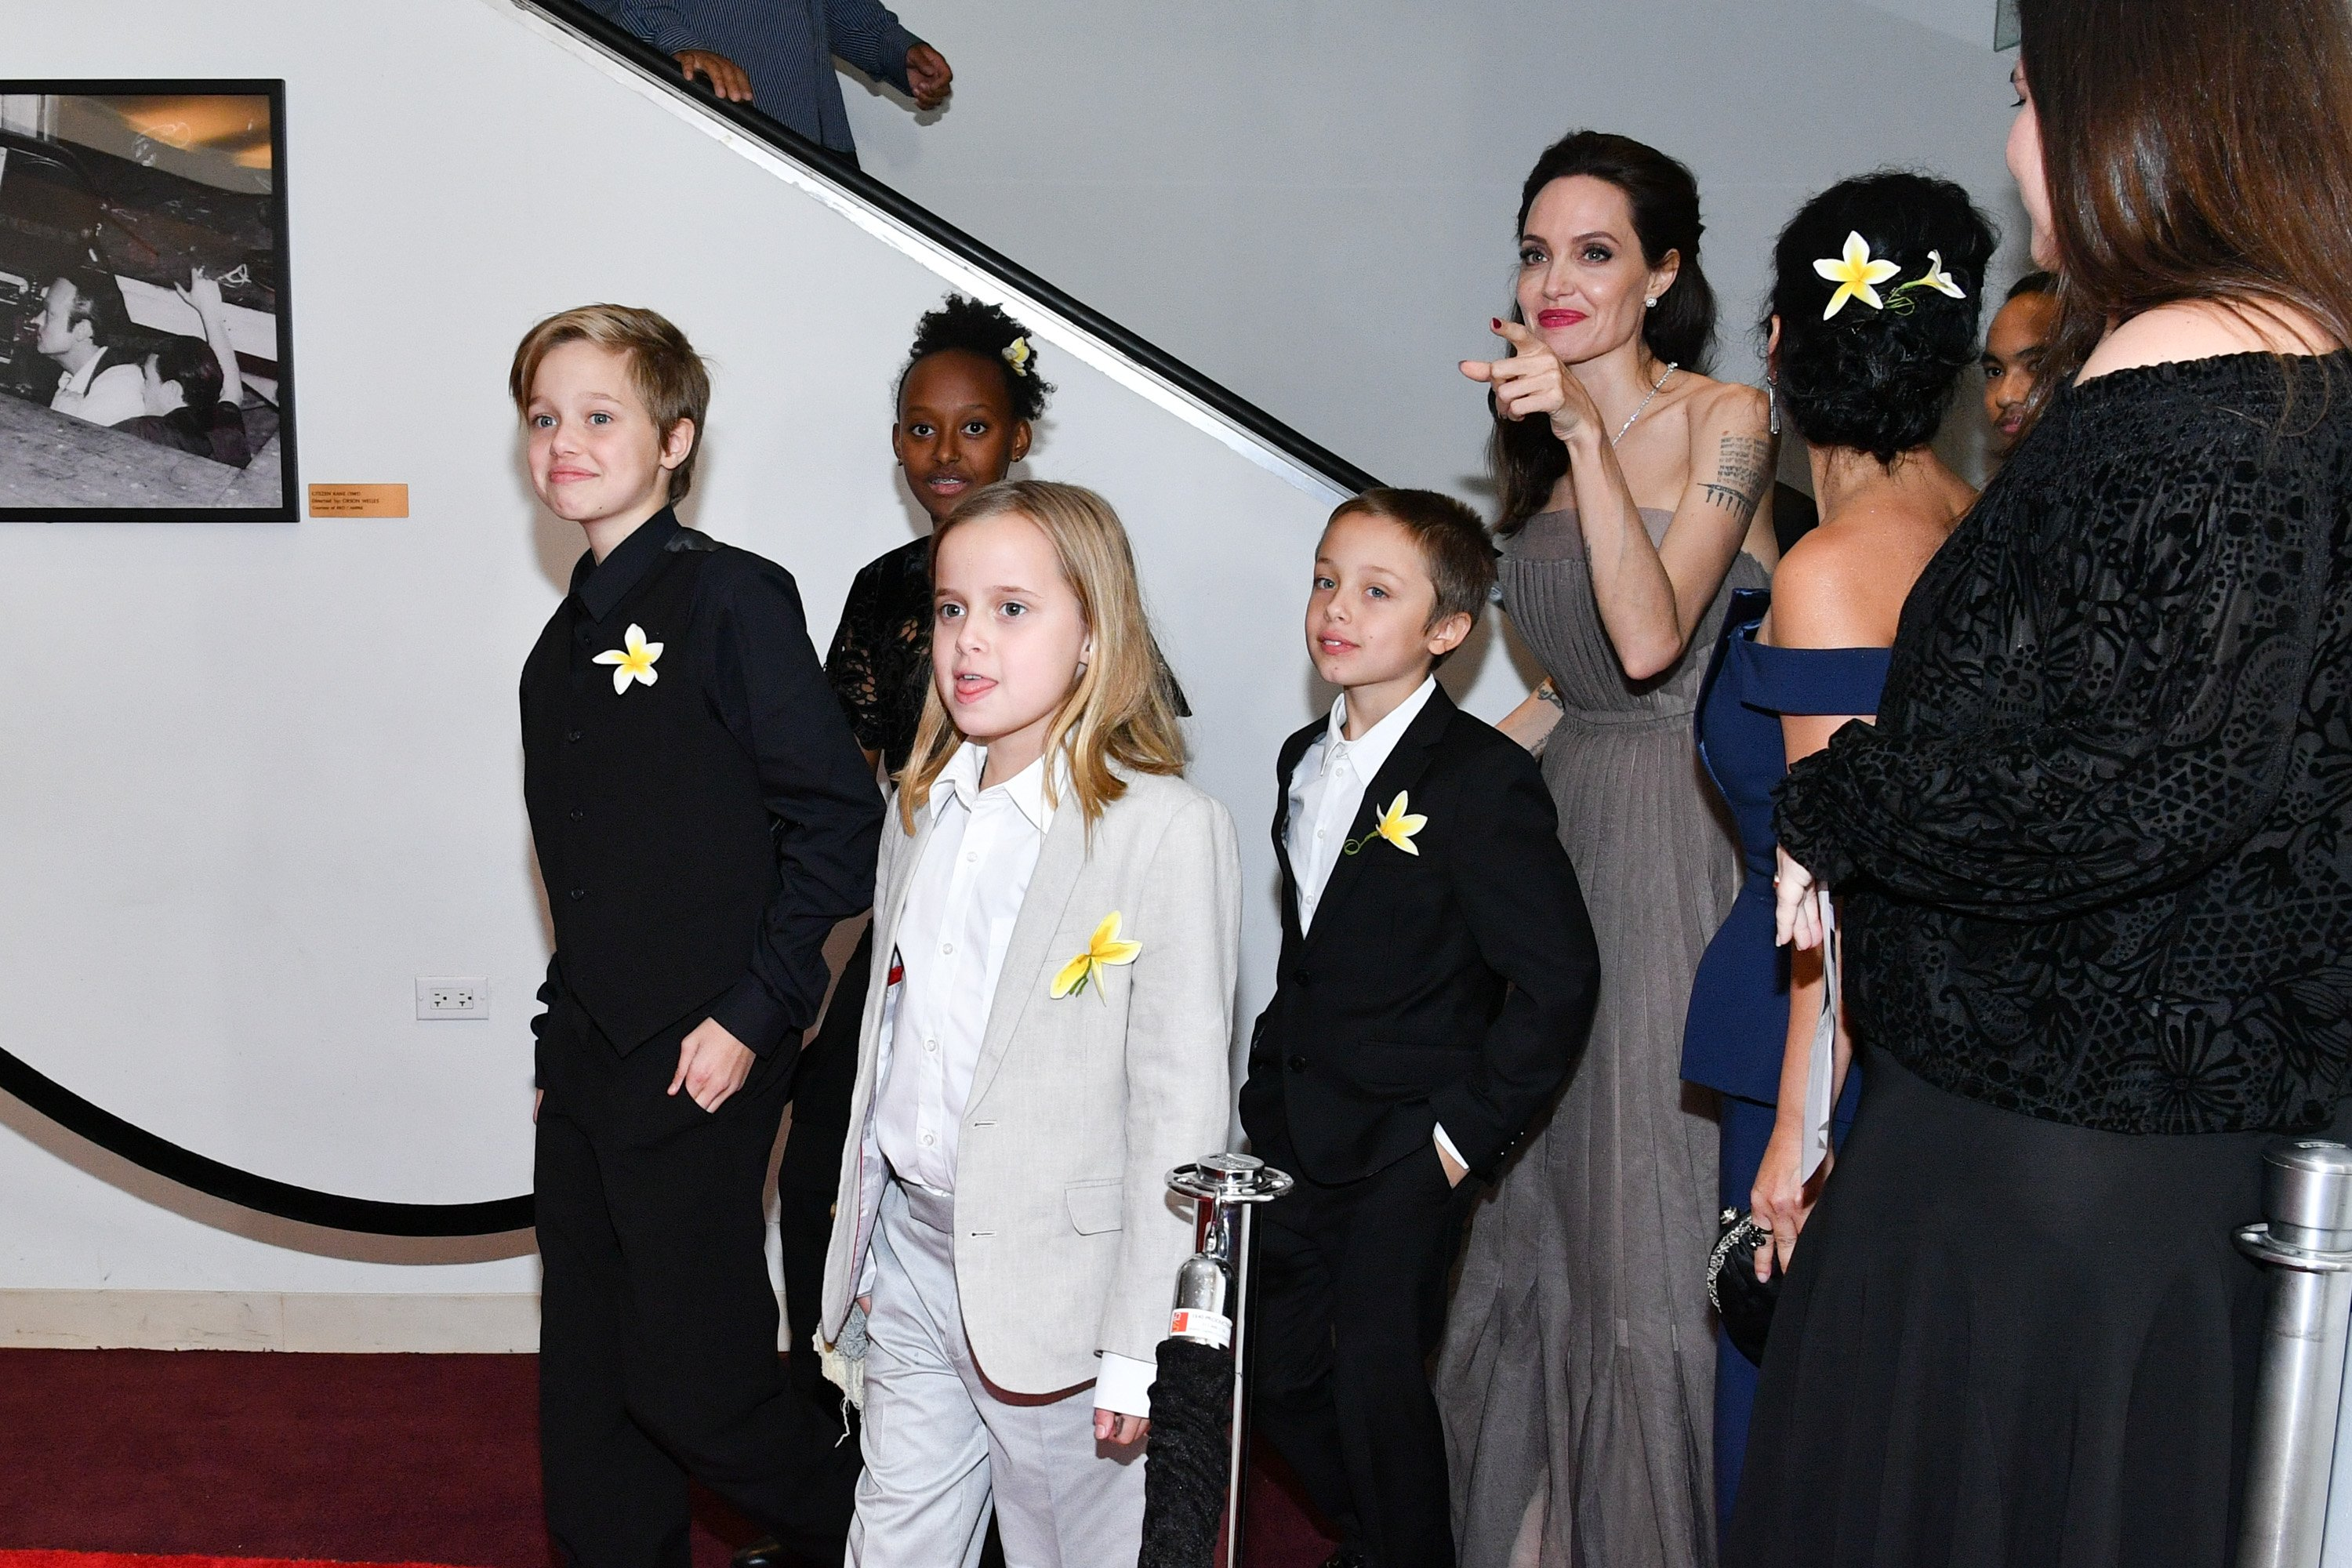 Image Source: Getty Images/ Jolie walking the red carpet with the kids